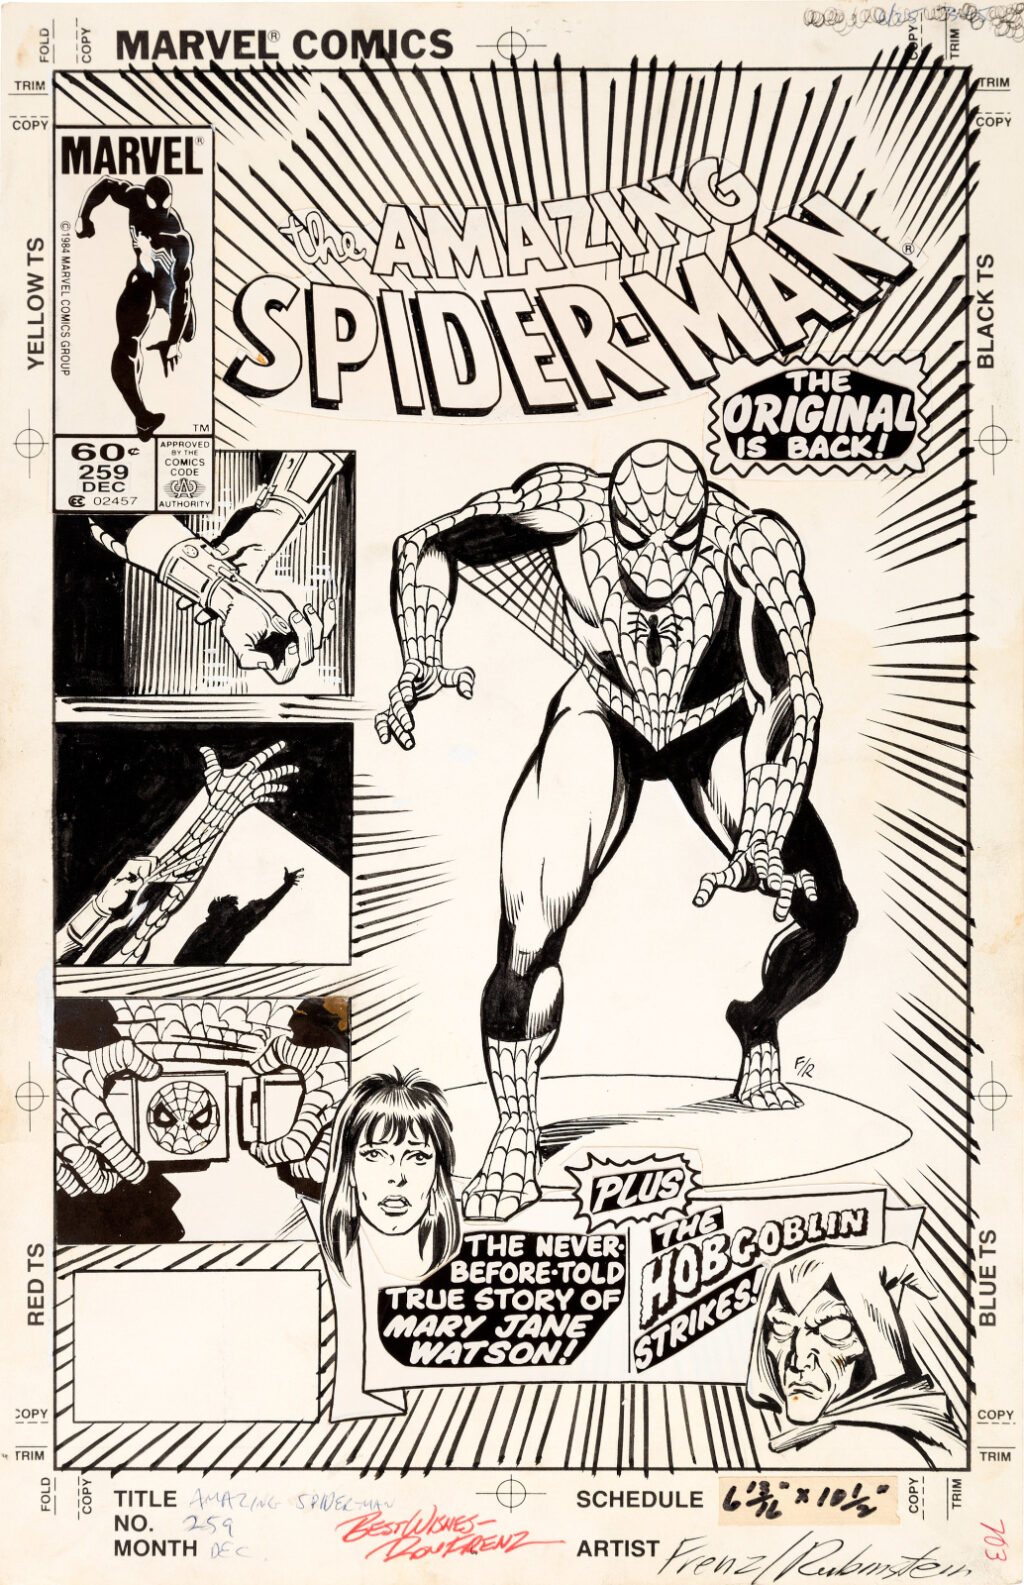 Amazing Spider Man issue 259 cover by Ron Frenz and Joe Rubinstein